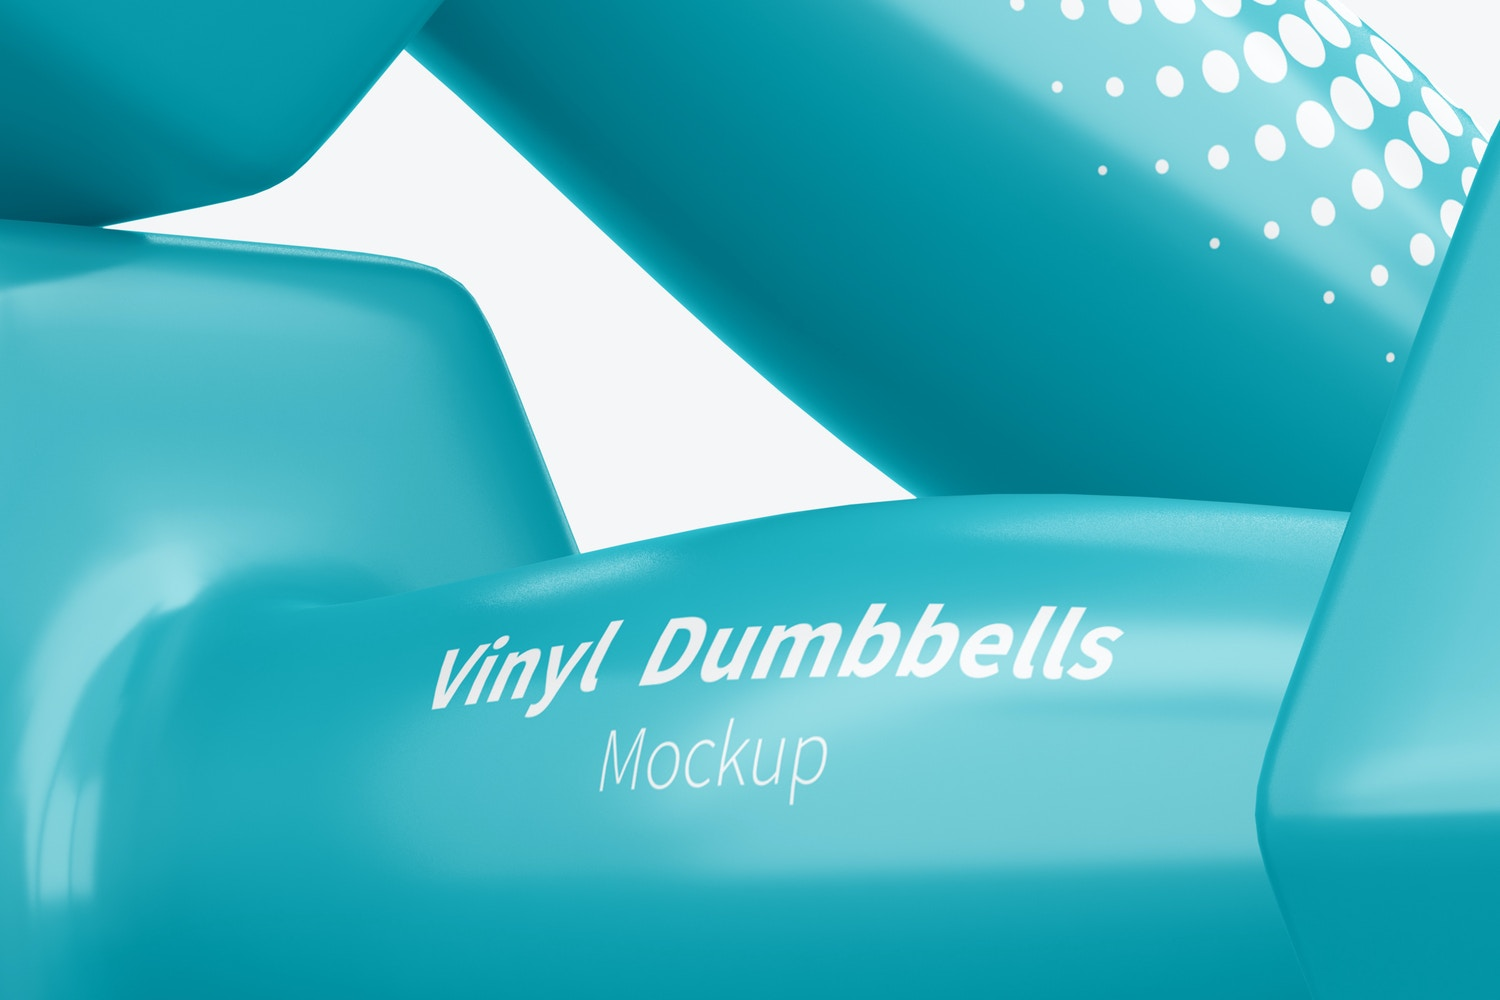 Vinyl Coated Dumbbells Mockup, Right View, Close-Up